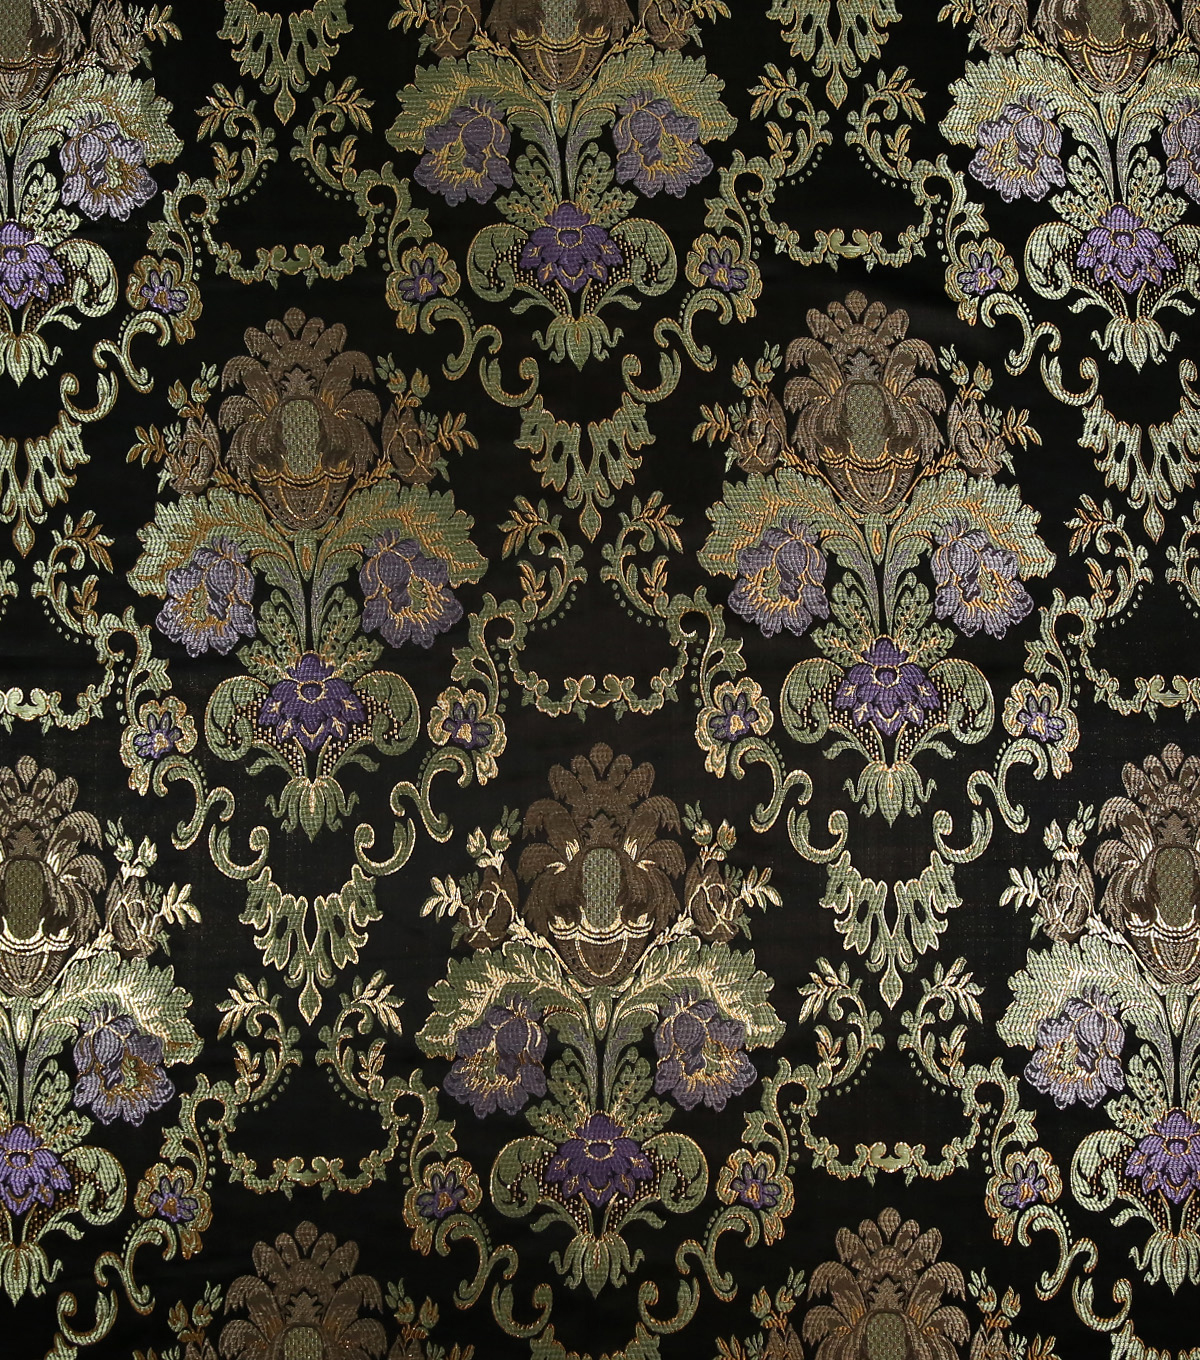 Brocade Fabric-Black, Gold & Purple Large Scale